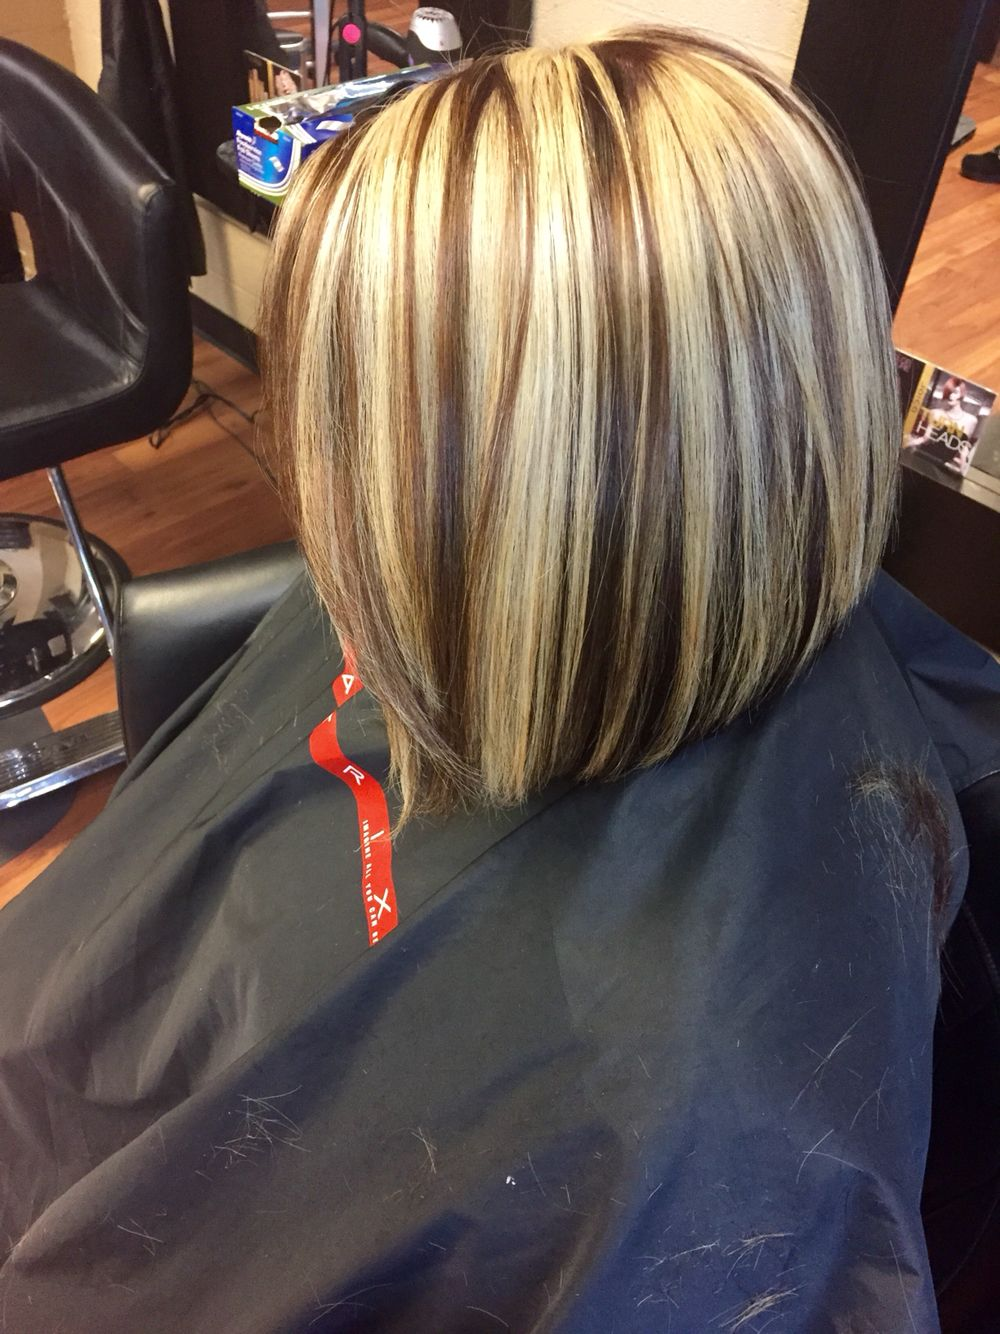 Chunky blonde highlight with a mocha brown base and short hair bob